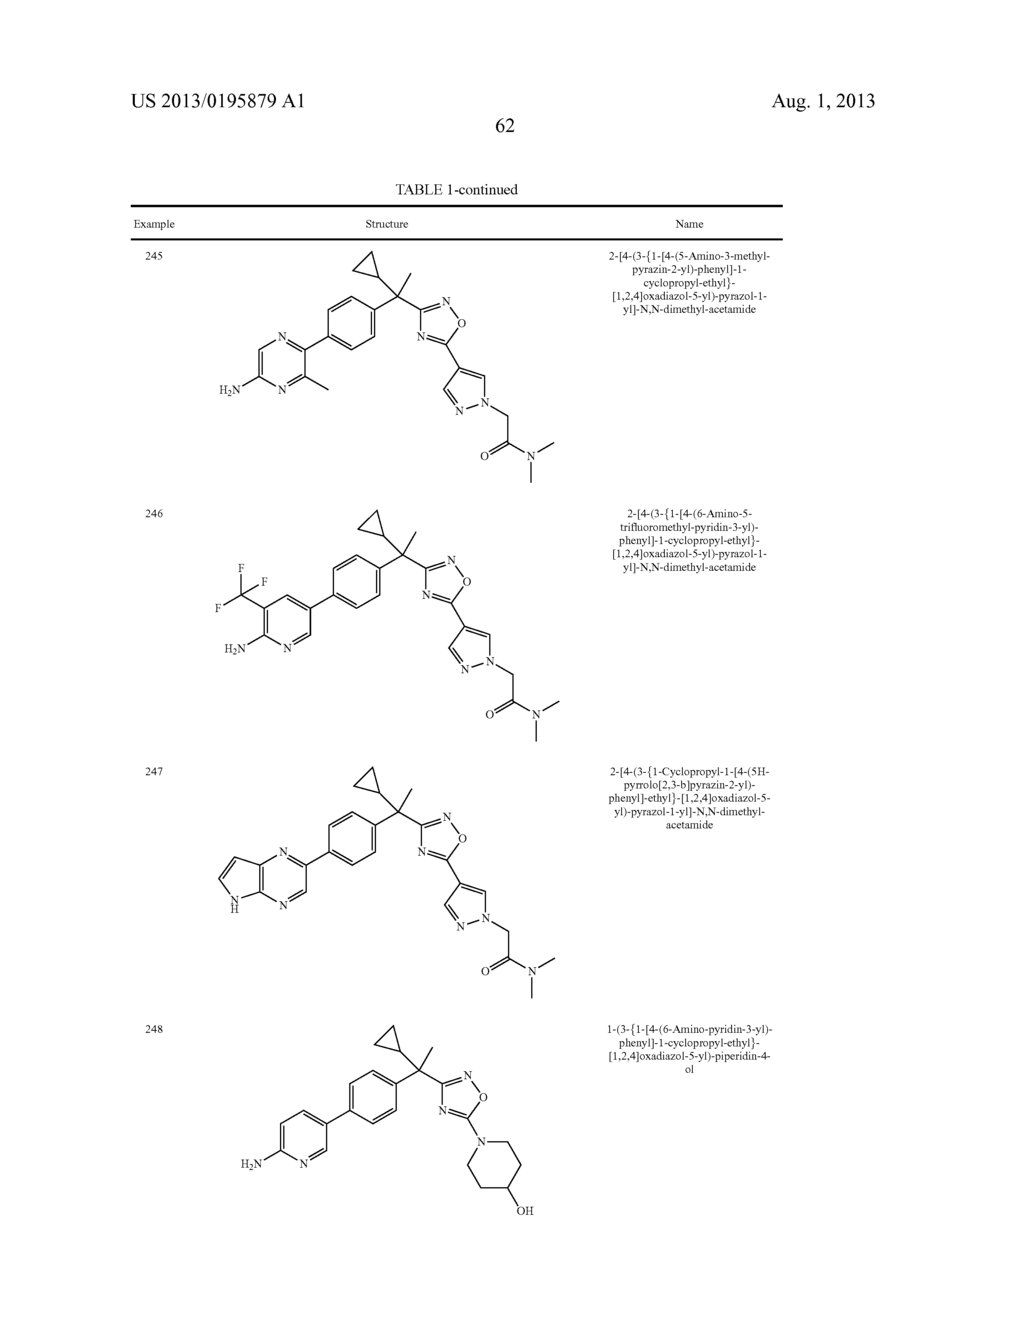 OXADIAZOLE INHIBITORS OF LEUKOTRIENE PRODUCTION FOR COMBINATION THERAPY - diagram, schematic, and image 64